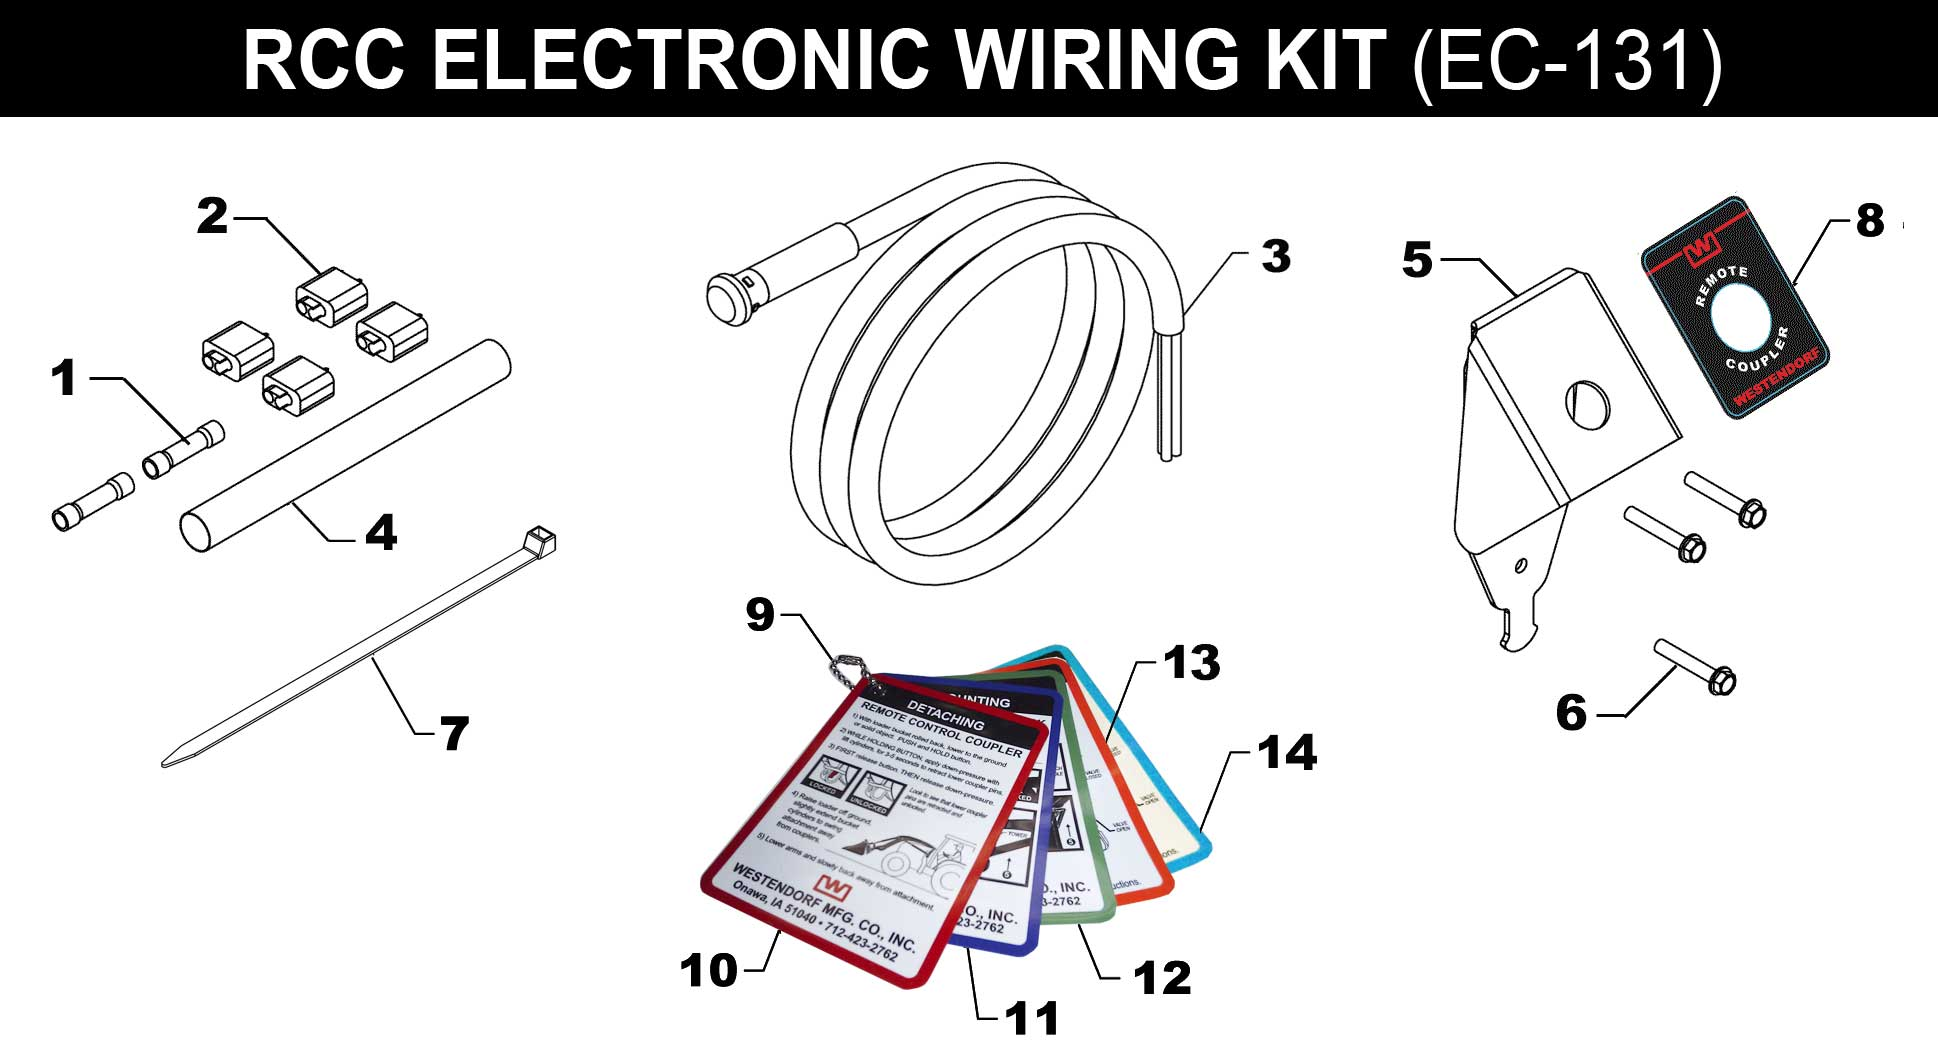 EC-C131 WIRING KIT FOR REMOTE COUPLER